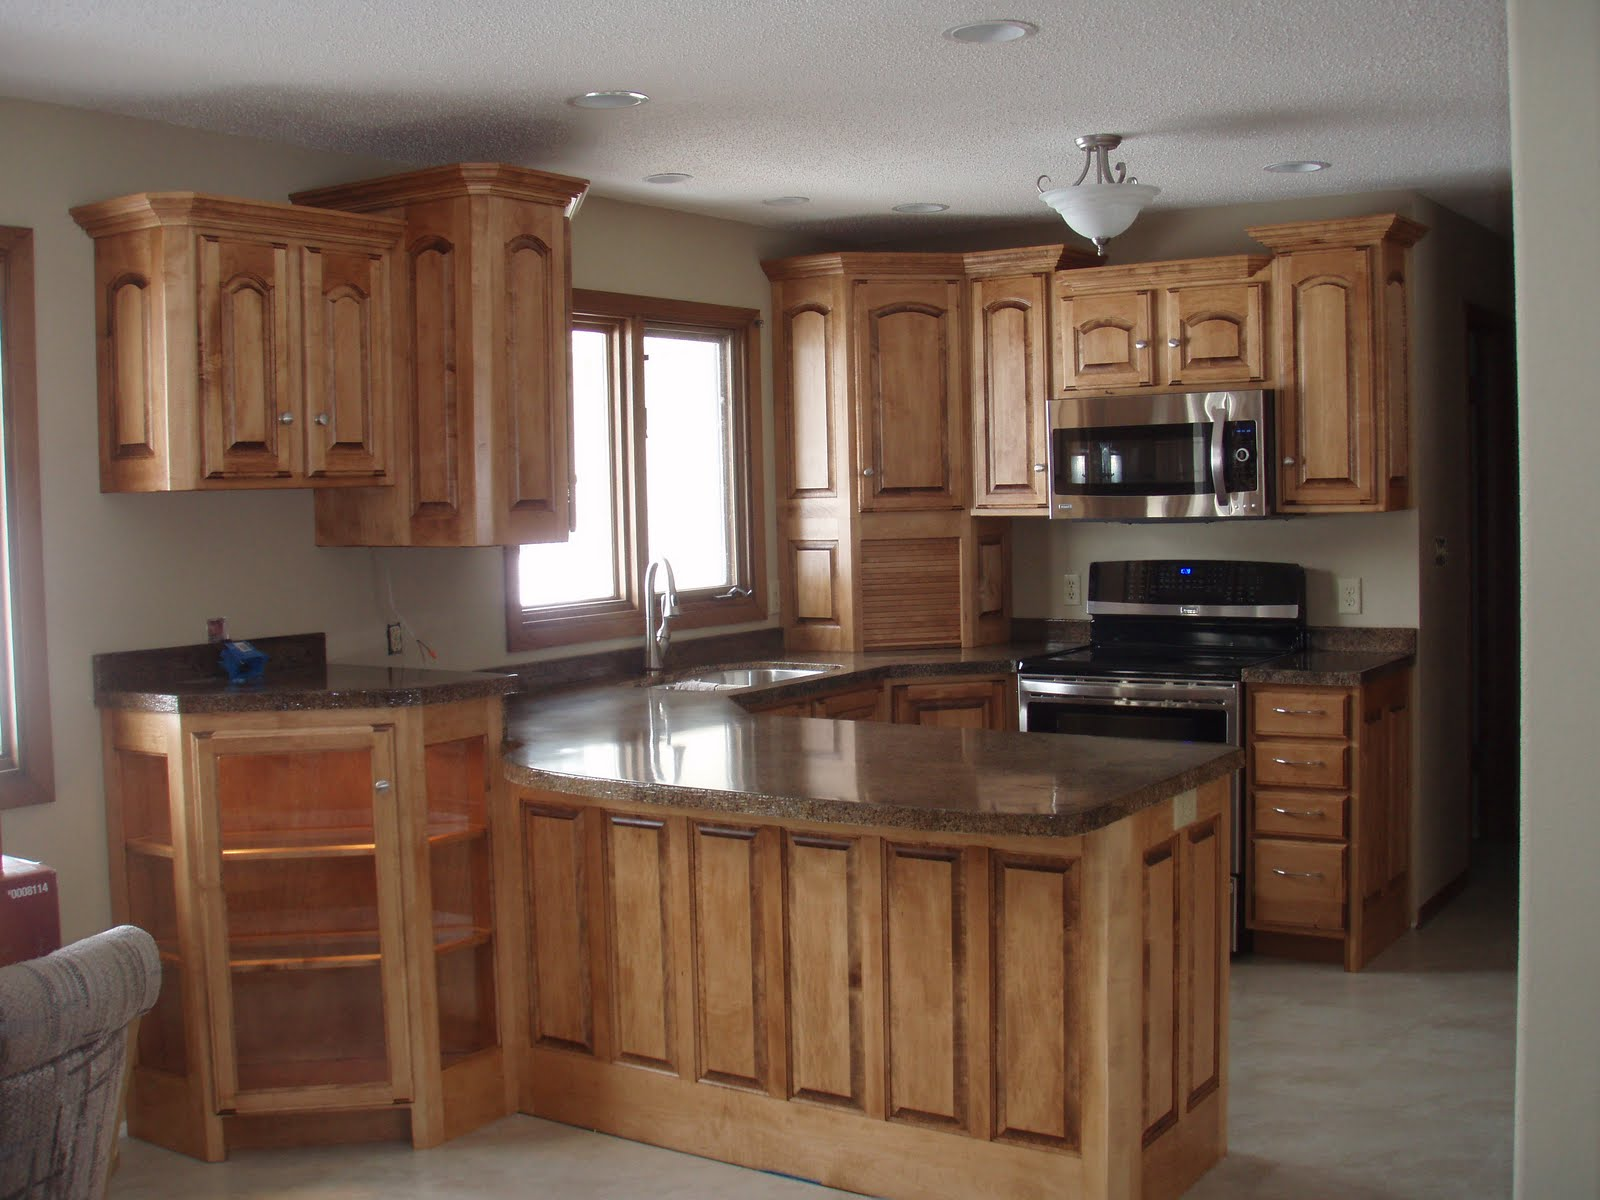 BACKER'S WOODWORKING: Maple Cabinets with Granicrete ... on Maple Cabinets With Black Countertops  id=58076